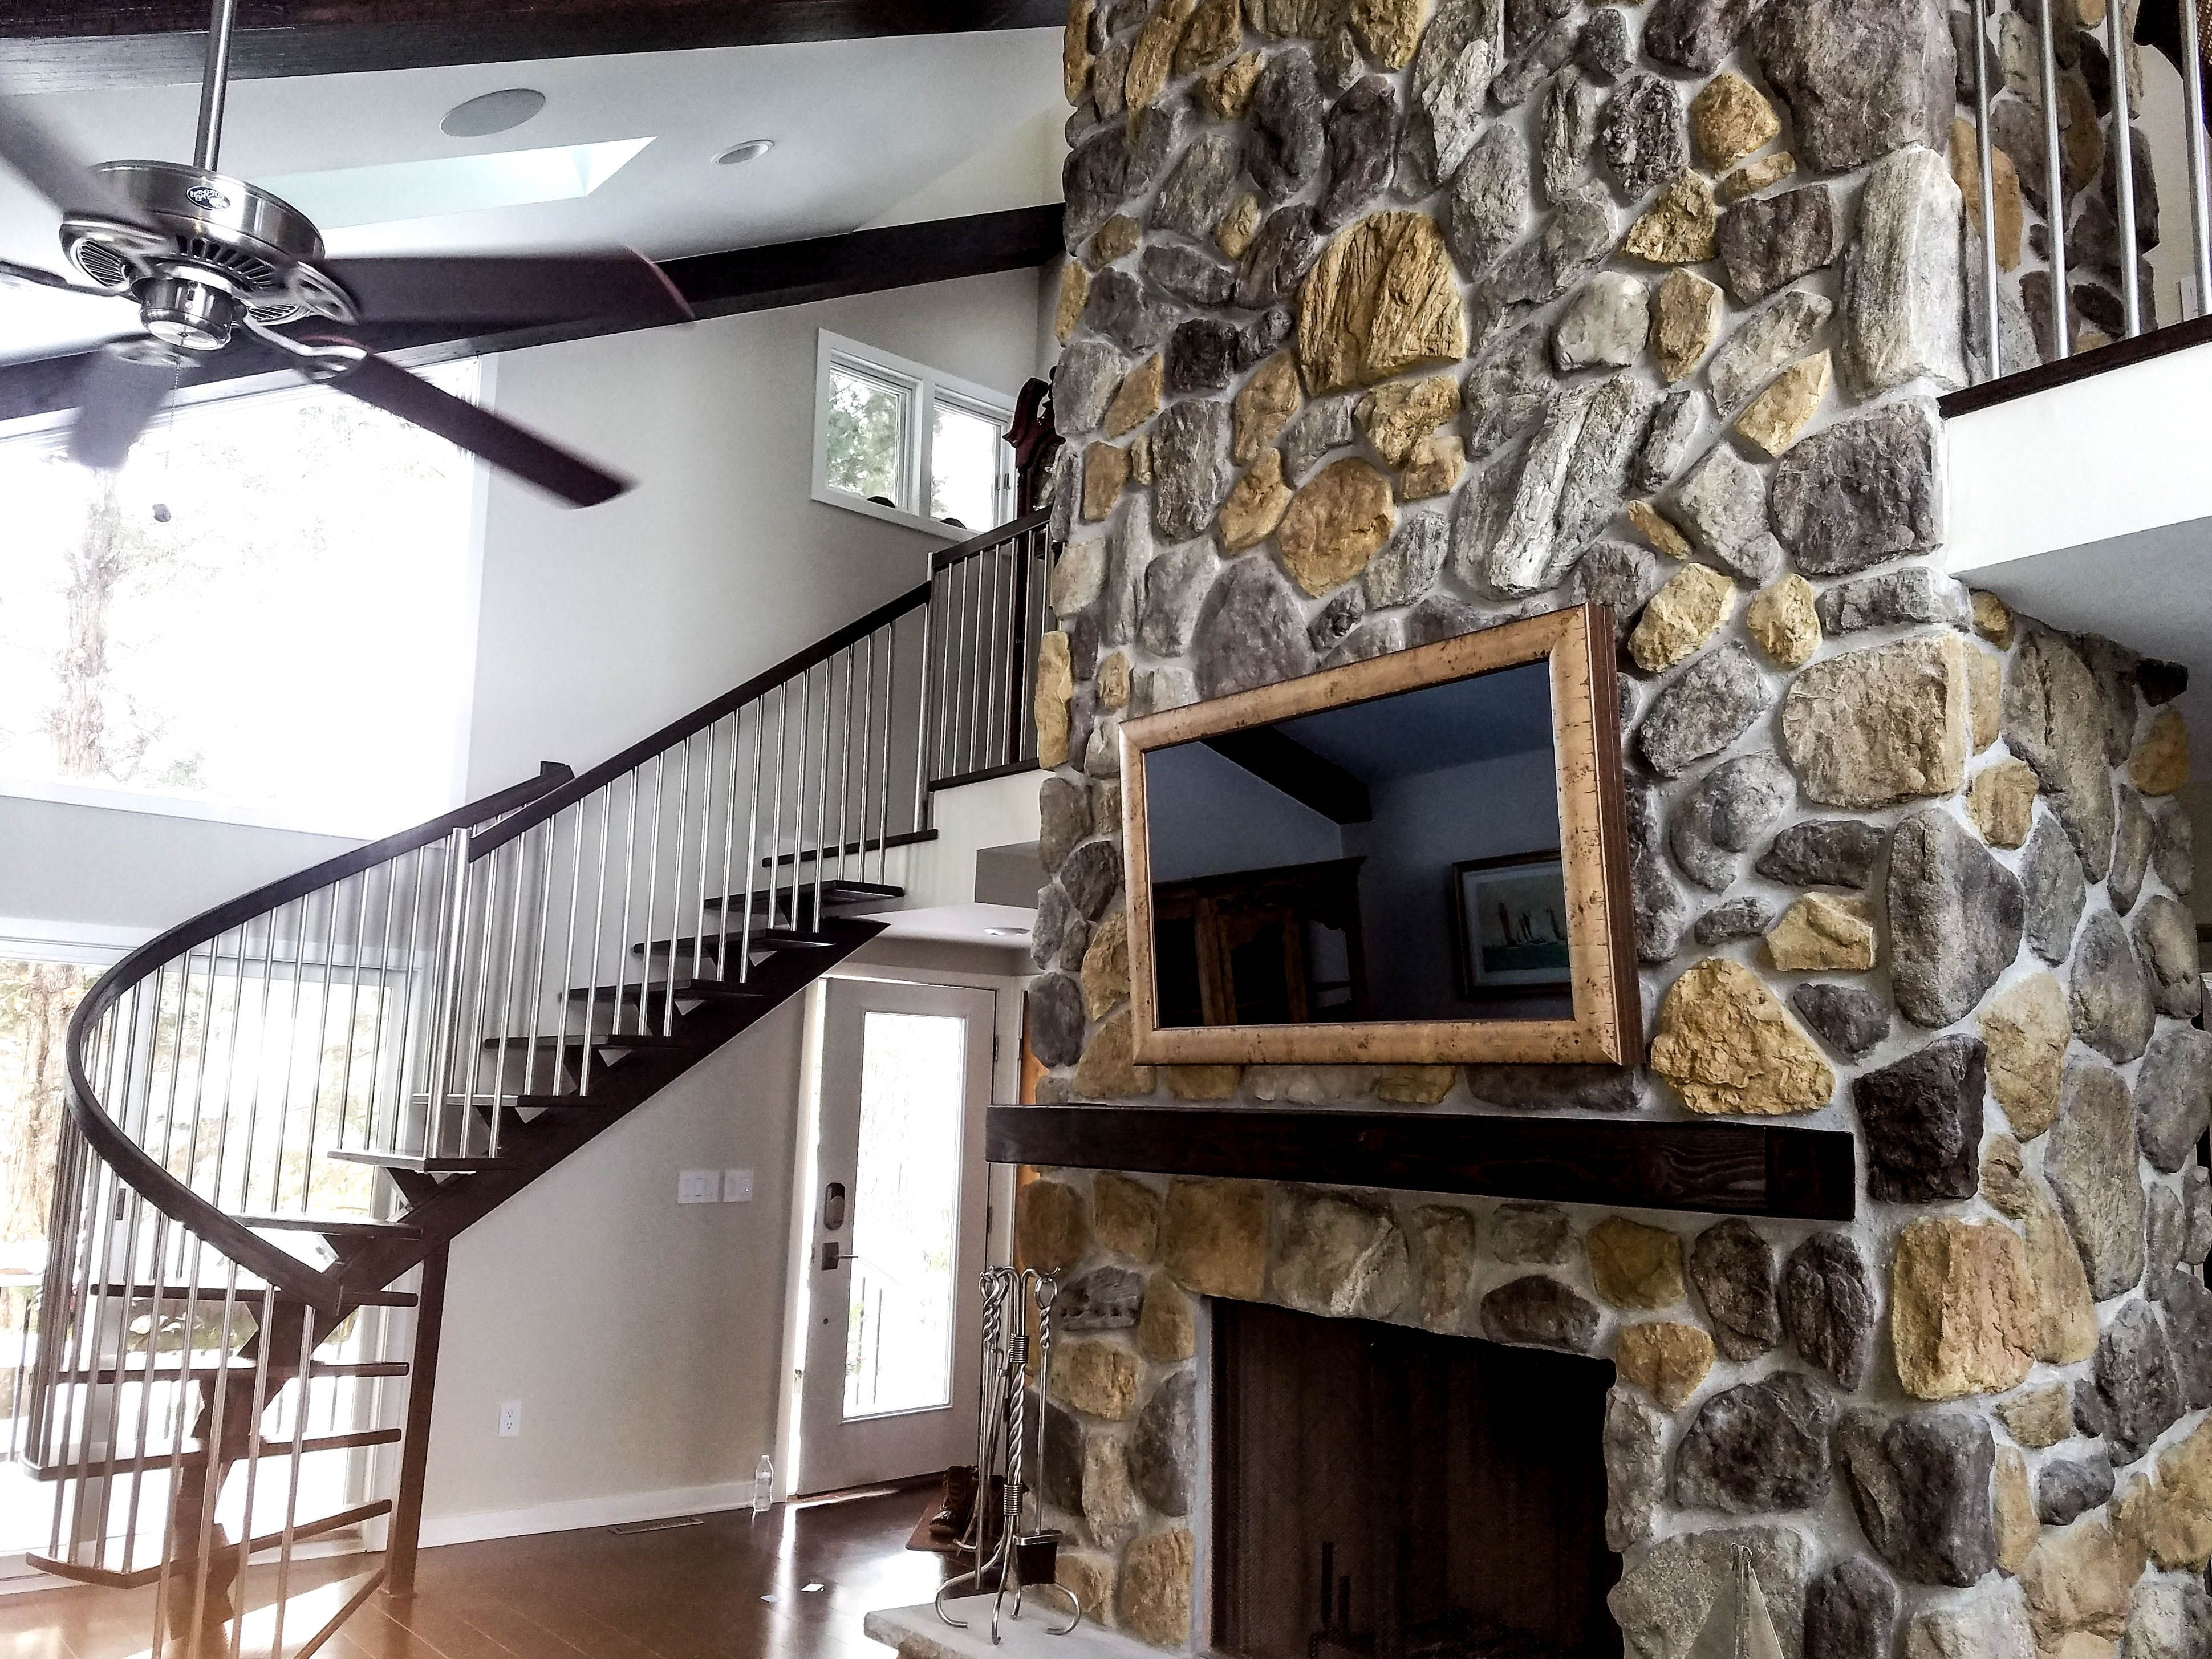 Best Custom Built Half Spiral Staircase With A Single Support 640 x 480